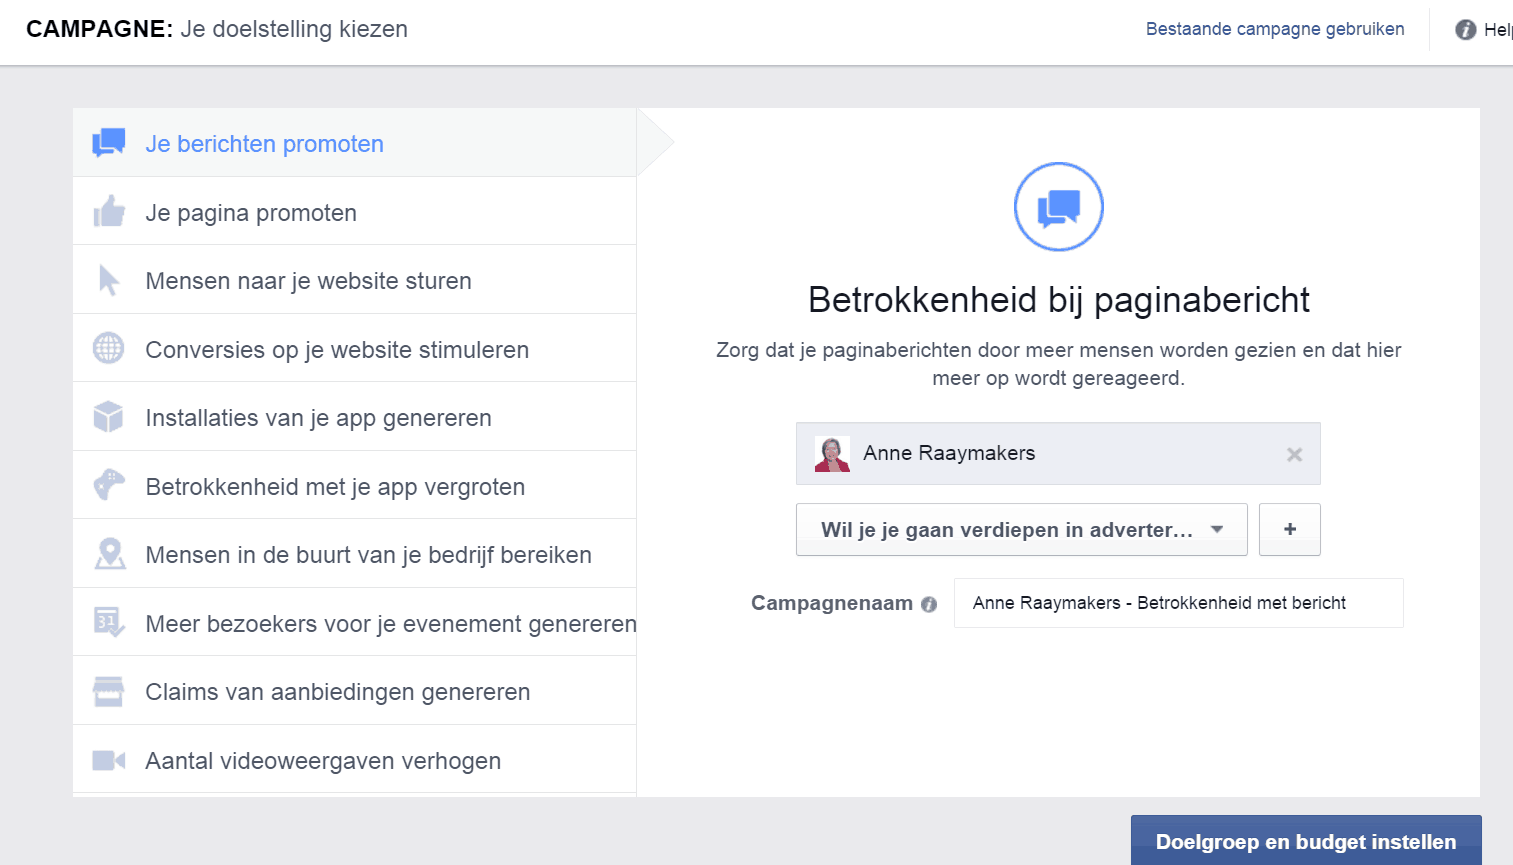 Facebook advertentie campagne